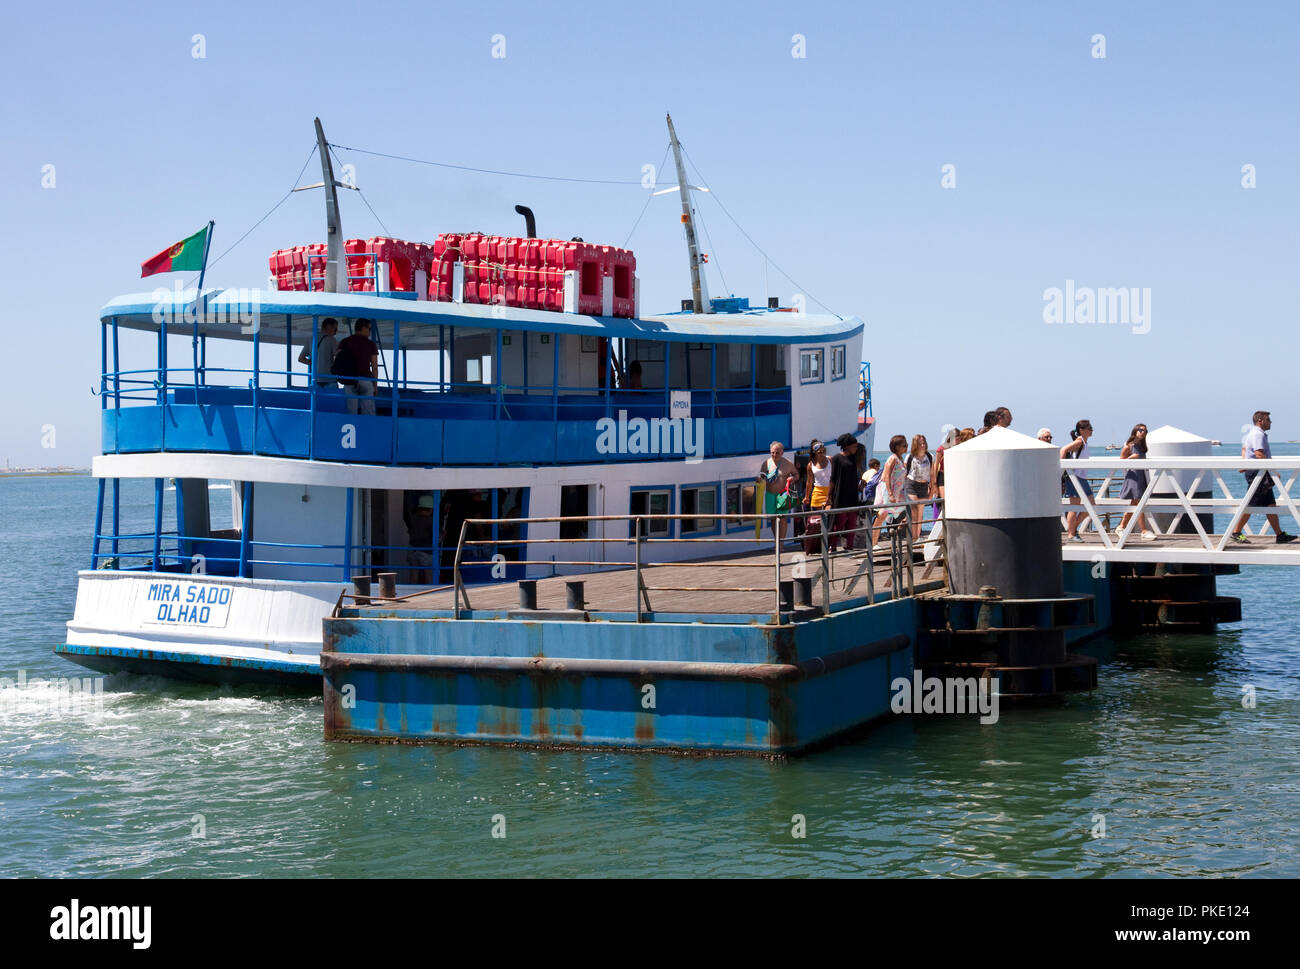 Harbour, Olhao, Algarve, Portugal. People getting off ferry Ferry to islands of Culatra-Farol, Armona, Ria Formosa Natural Park. - Stock Image